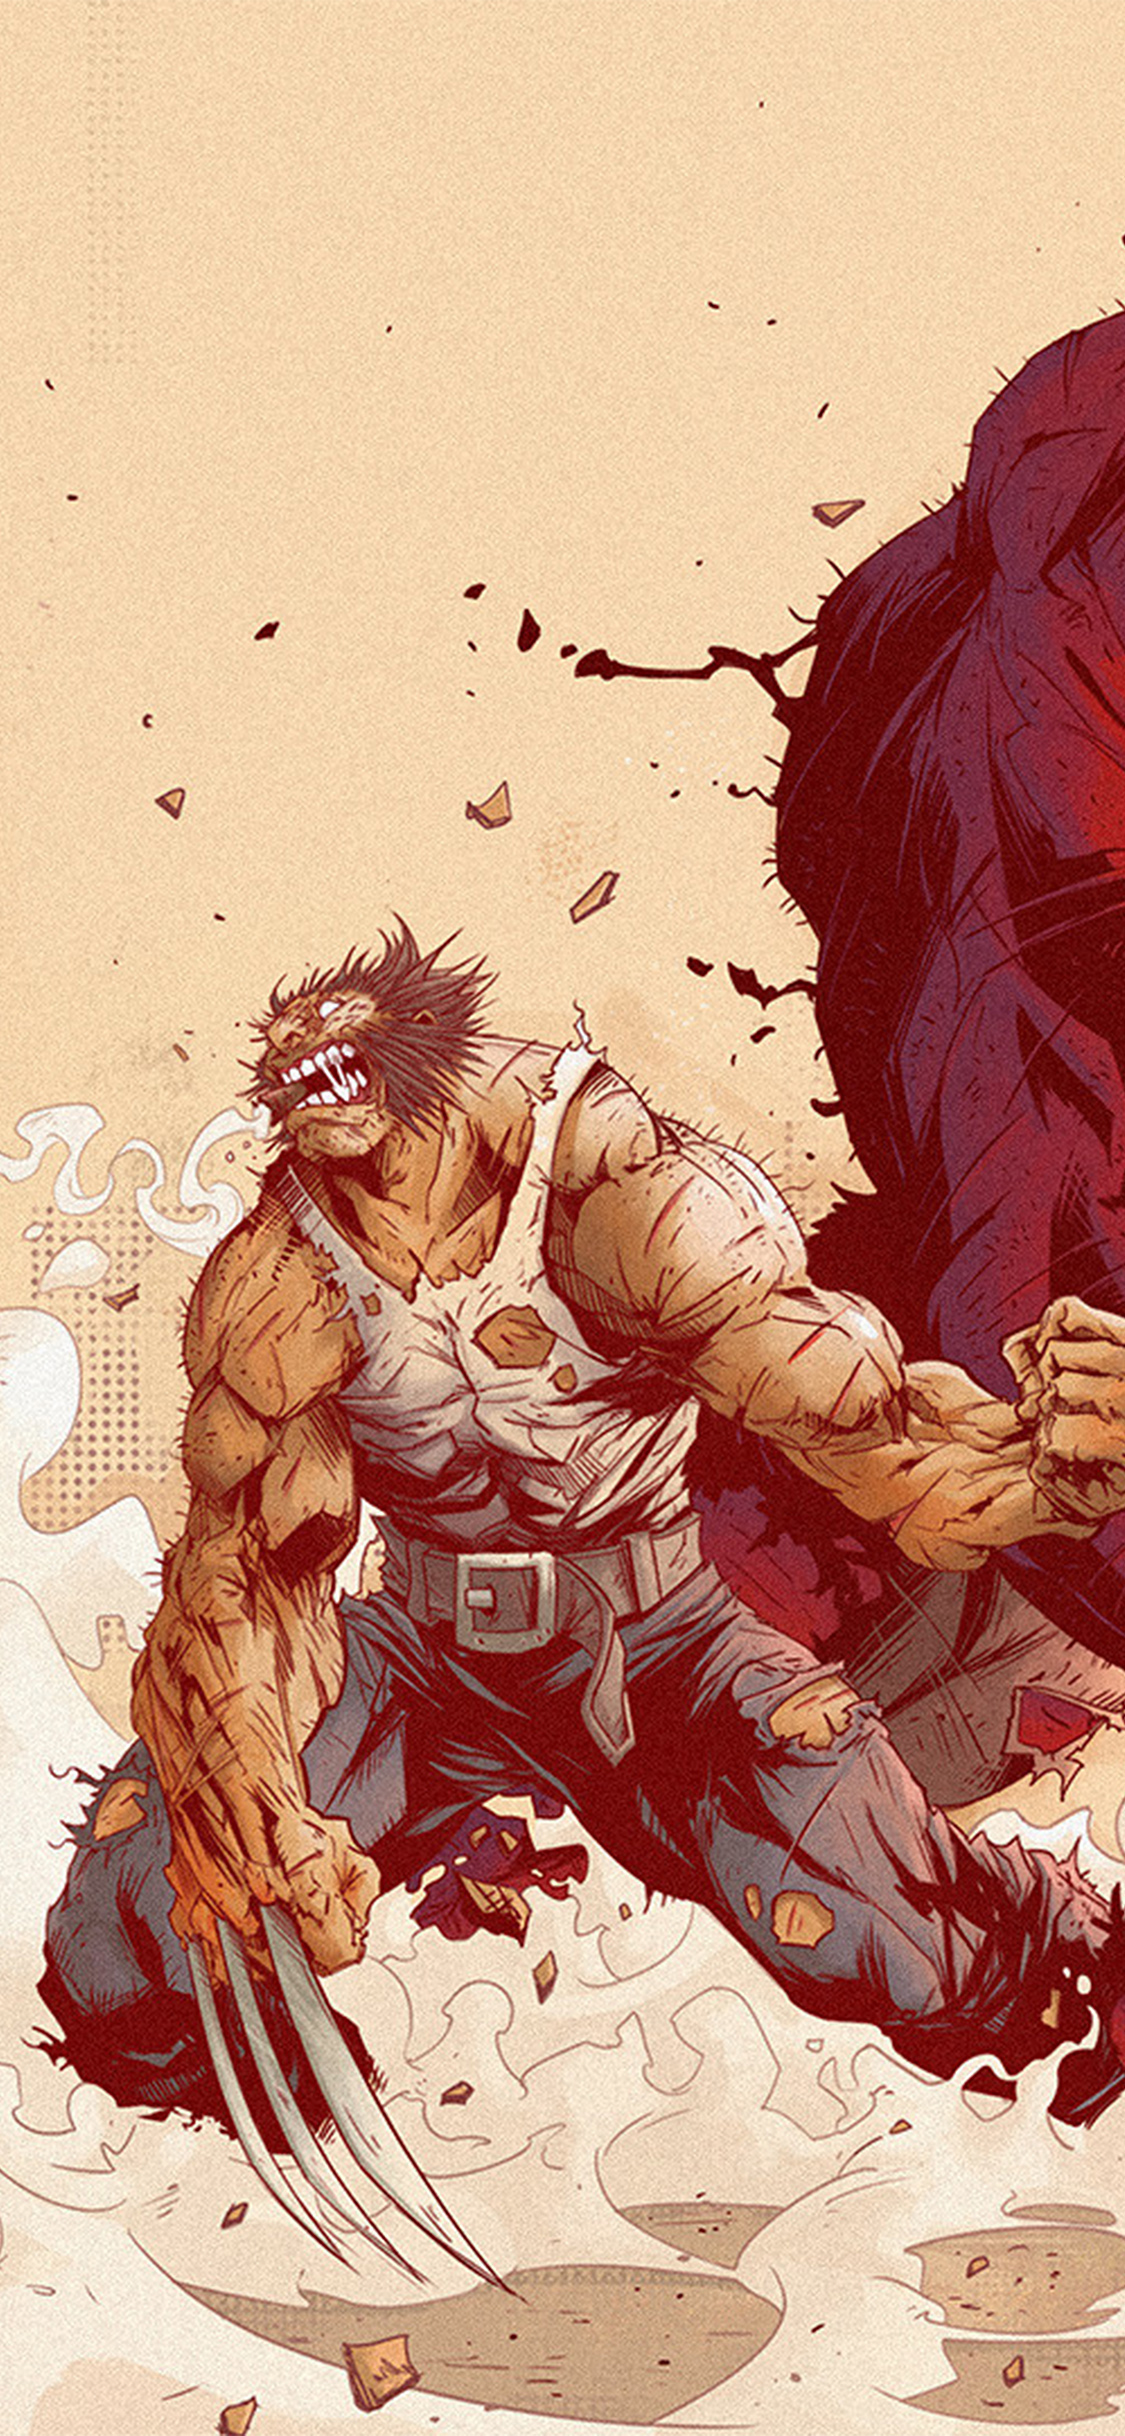 iPhoneXpapers.com-Apple-iPhone-wallpaper-aw94-wolverine-anime-tonton-revolver-illustration-art